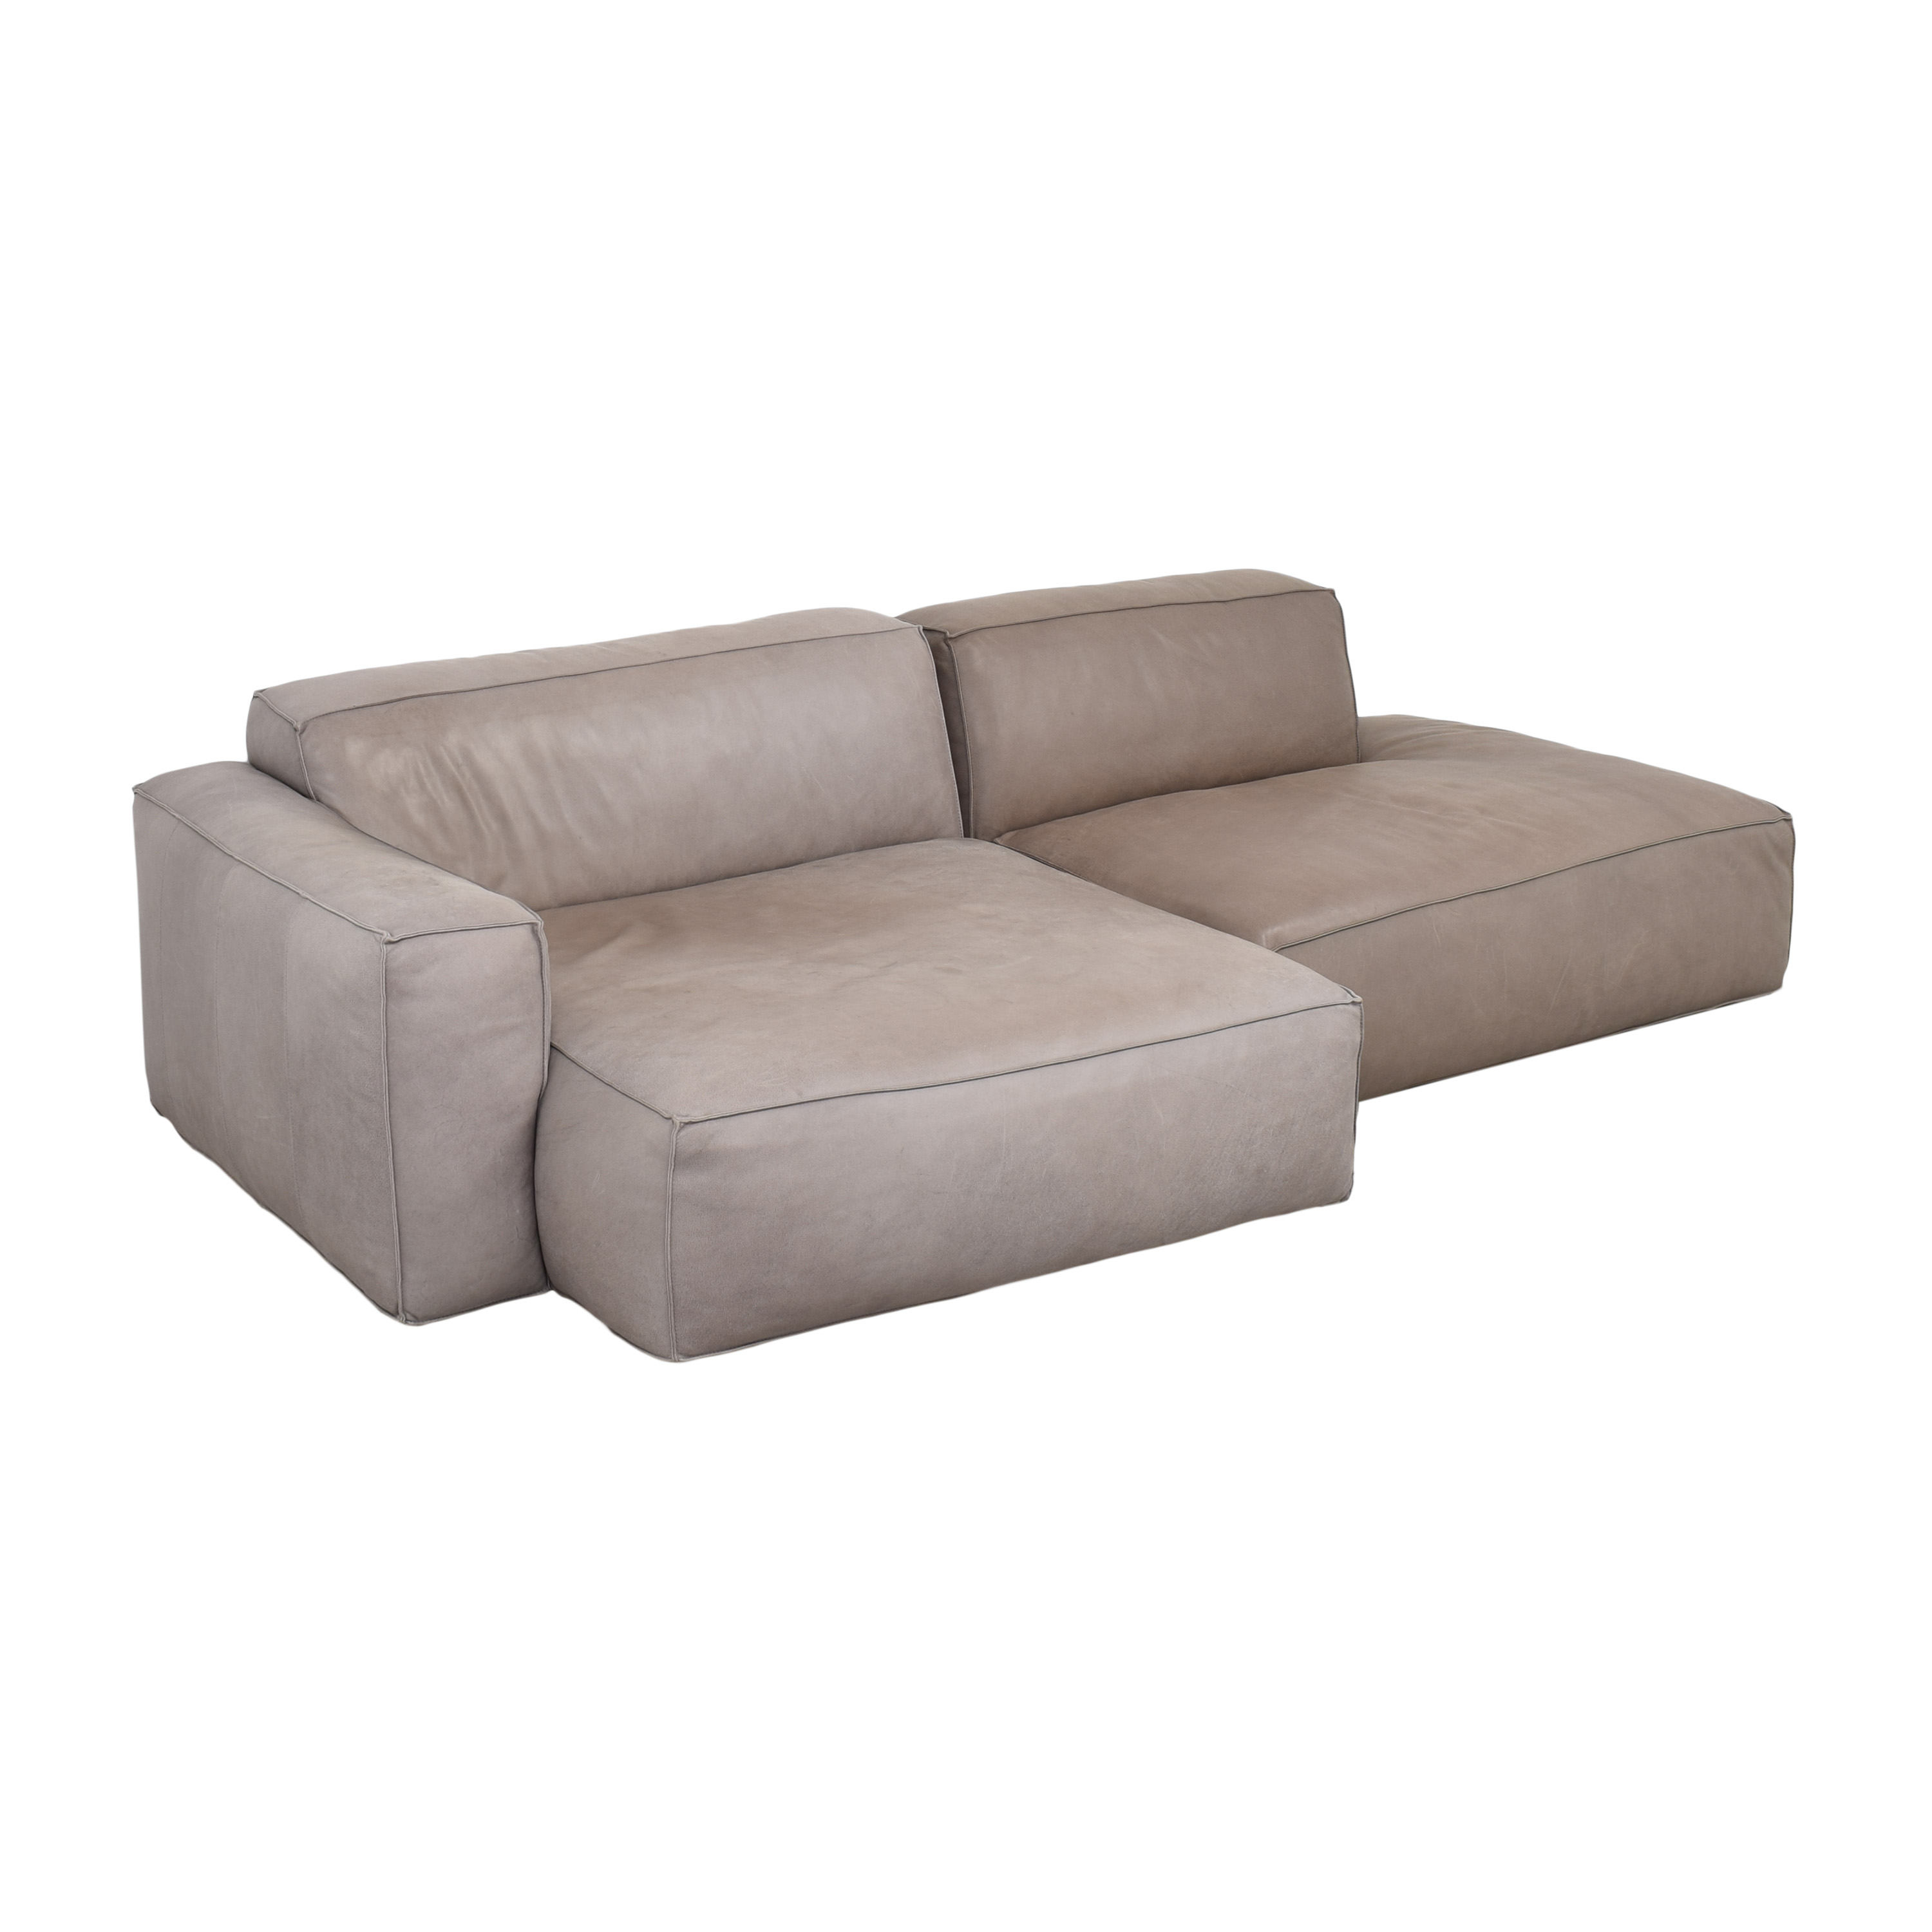 Article Article Solae Left Sectional Sofa discount